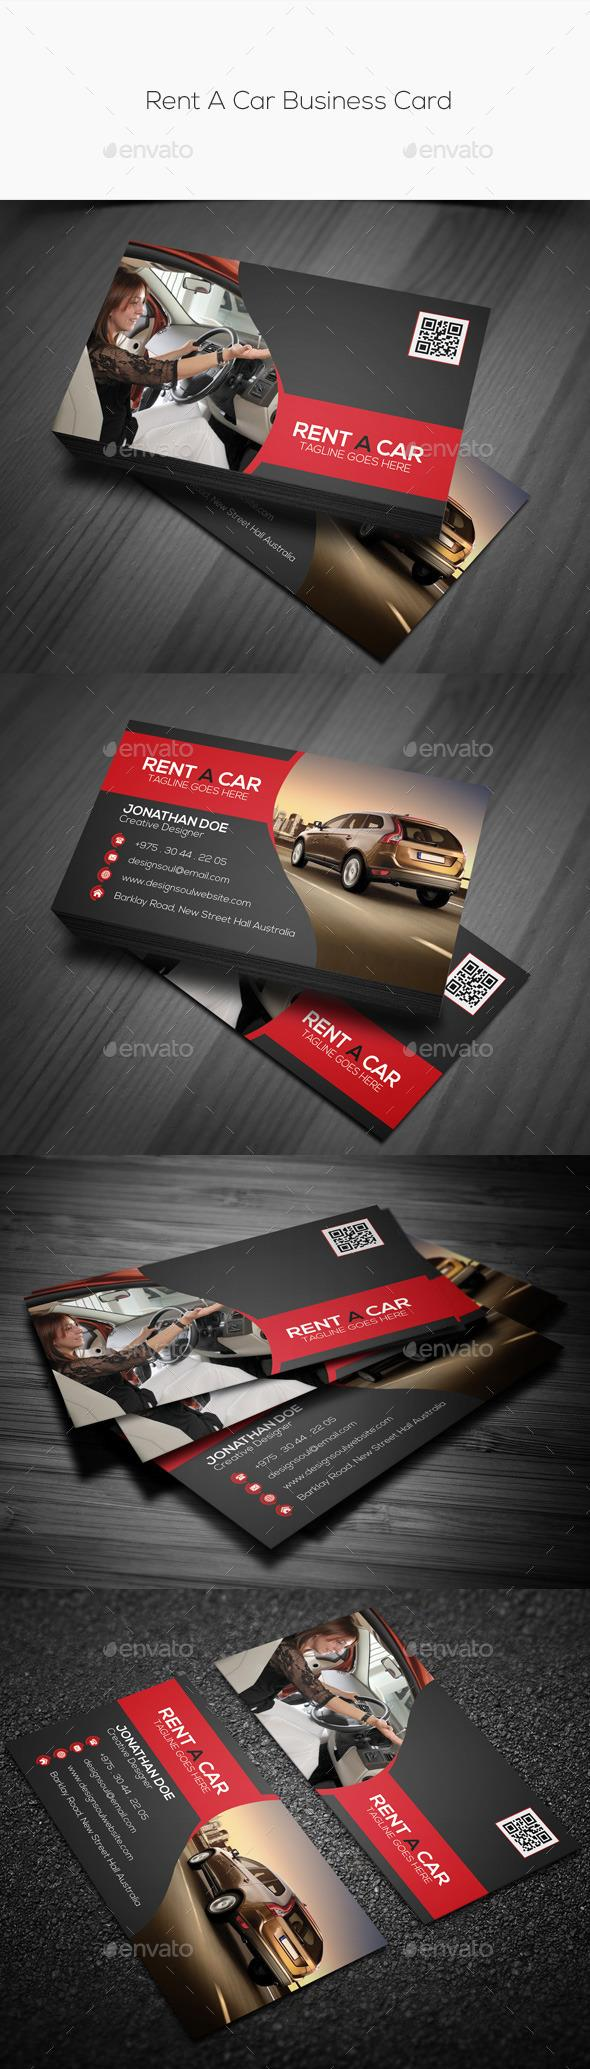 Rent a car business card business card design pinterest rent a car business card magicingreecefo Images